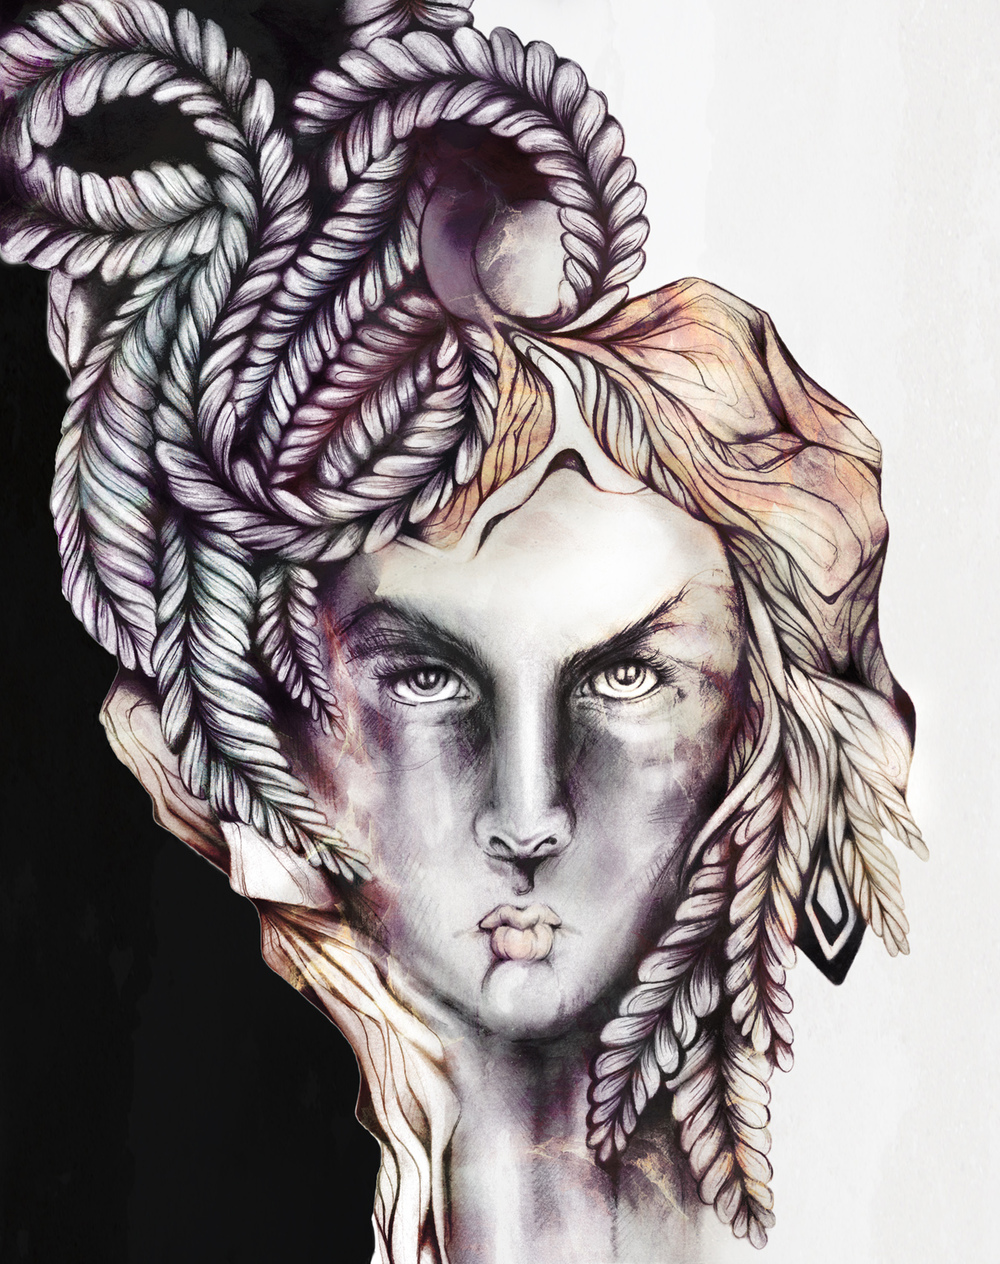 Adrianna+Grezak+girl+illustration+surreal+drawing